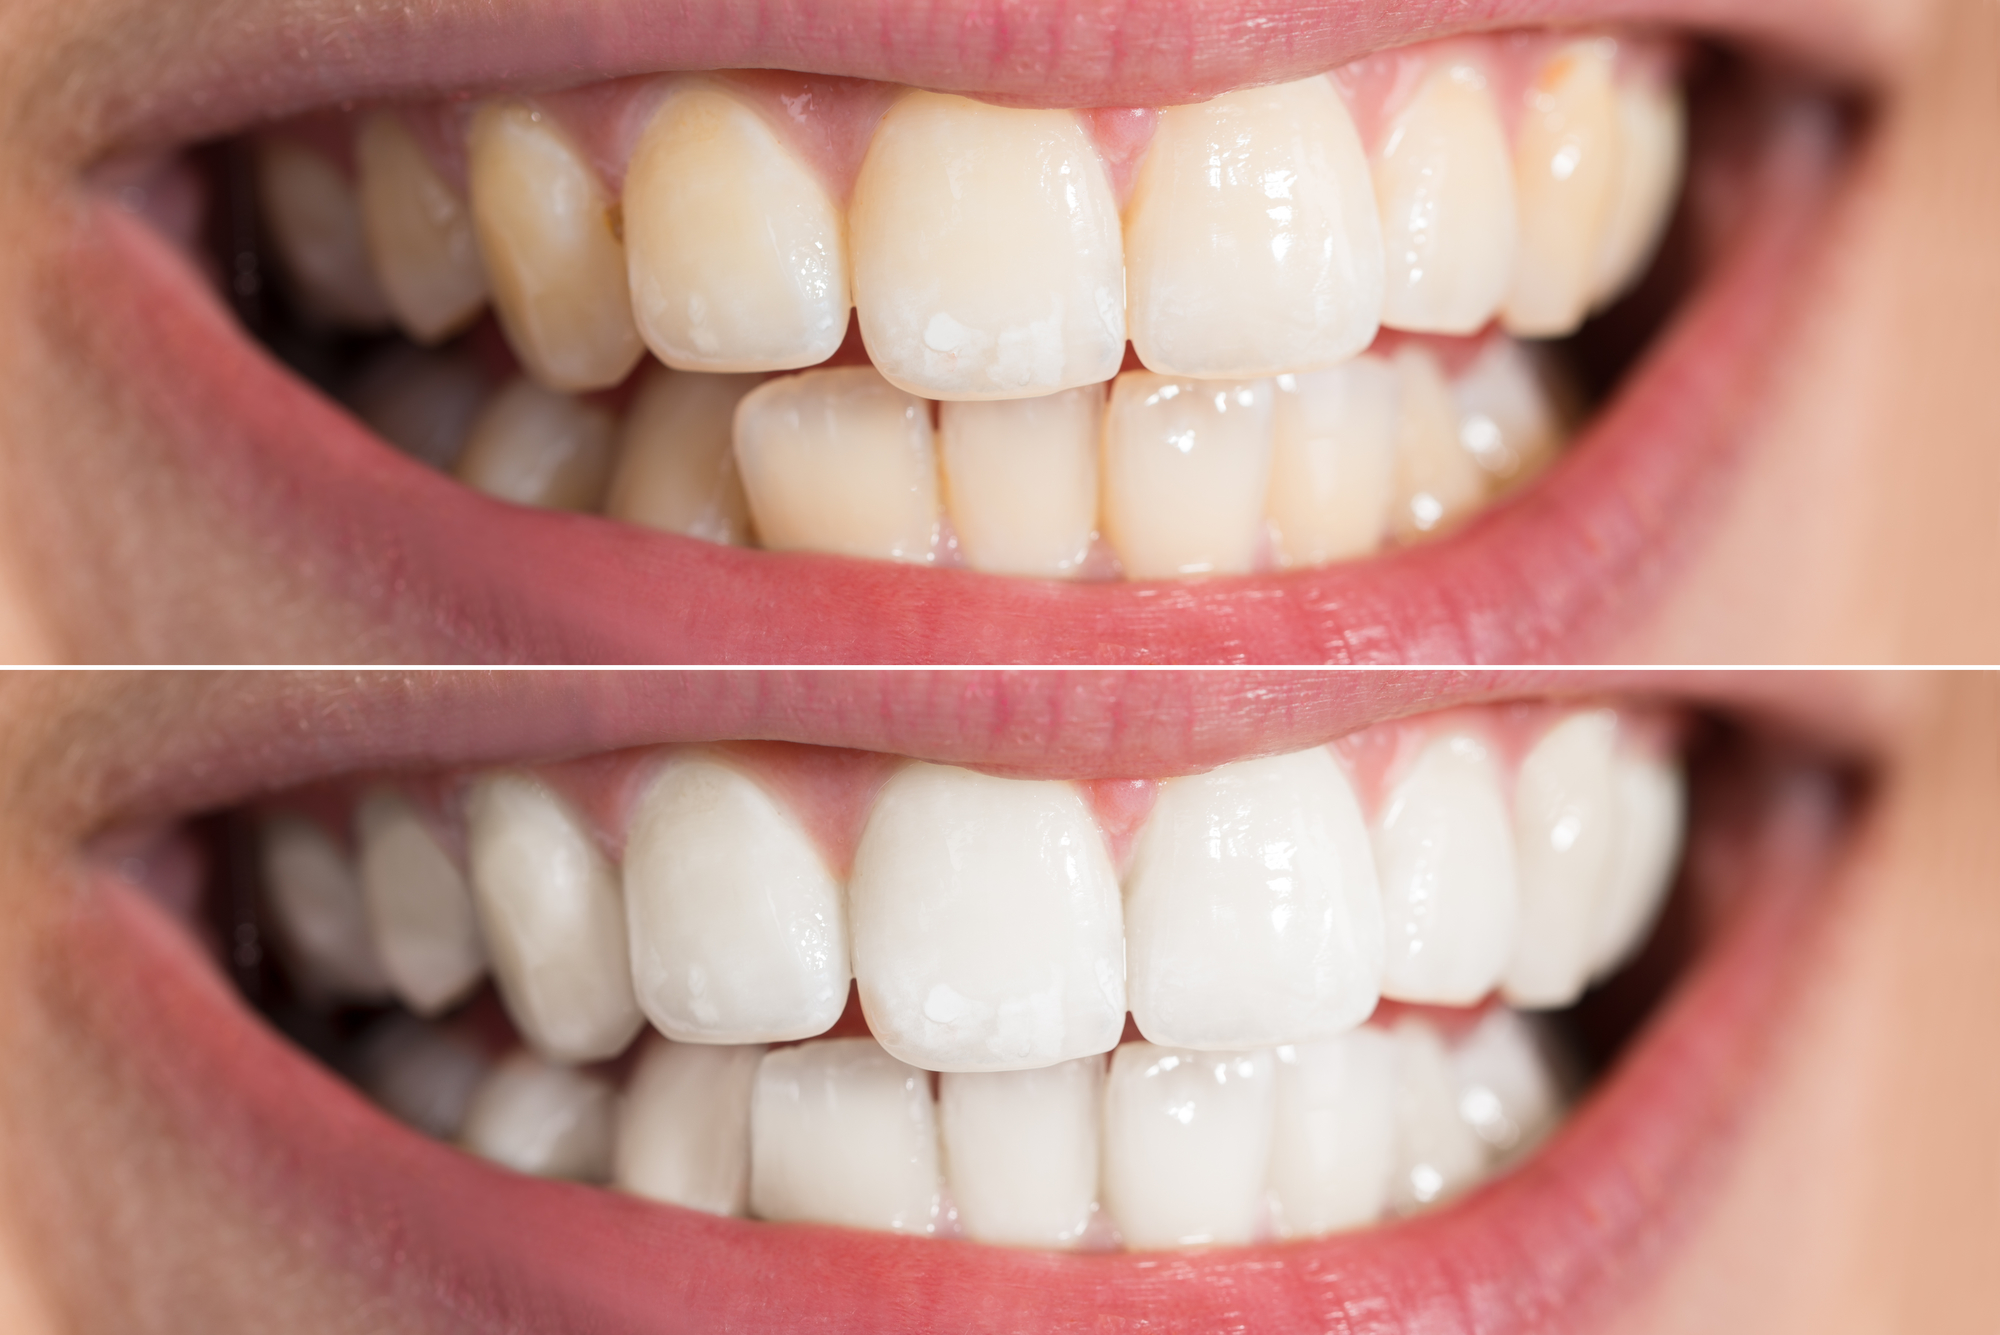 What are the benefits of teeth whitening in Boynton Beach?